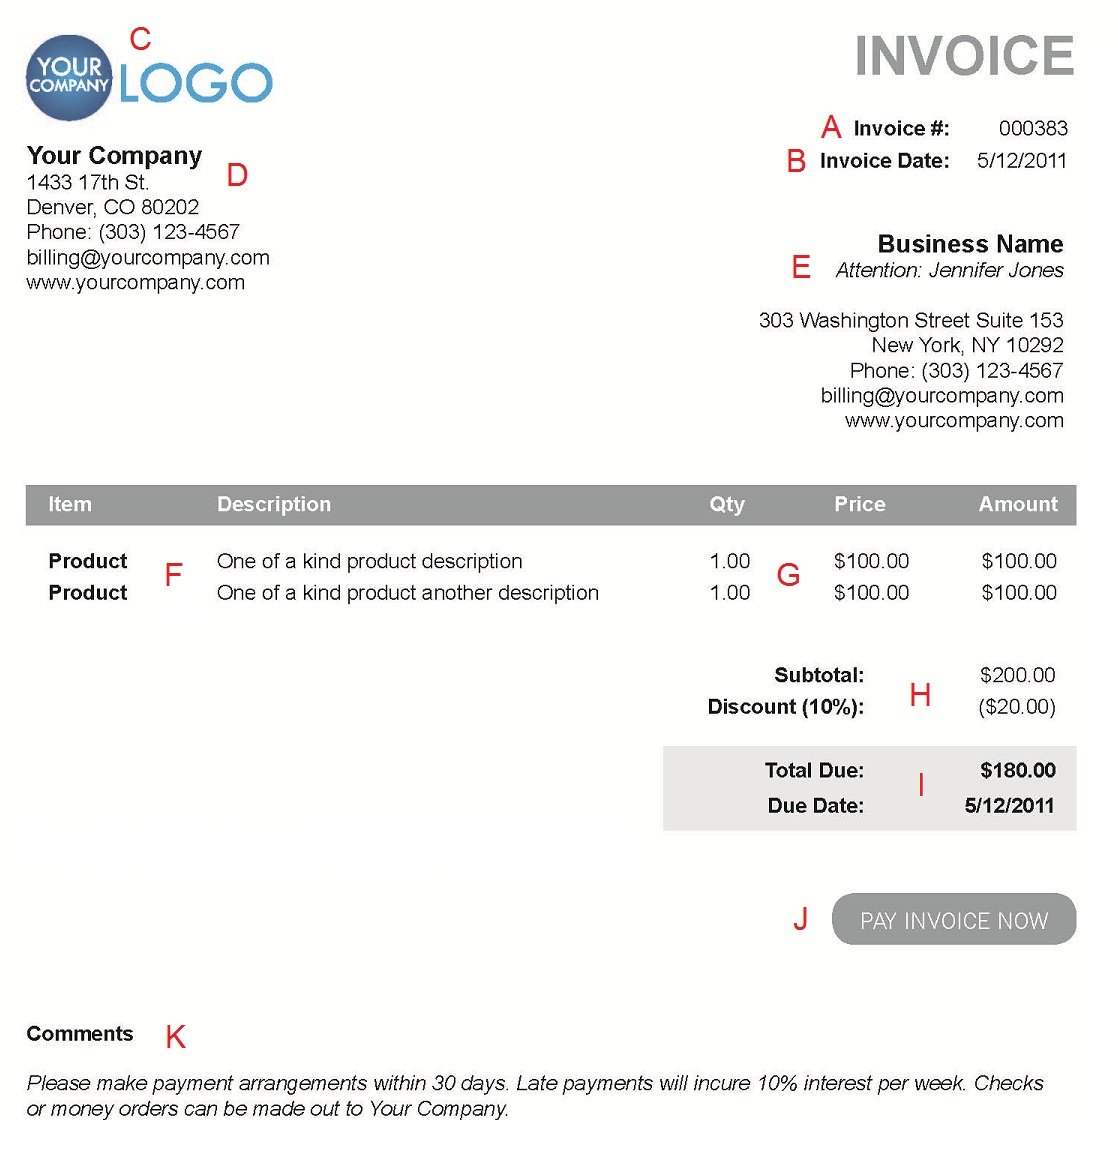 Ultrablogus  Inspiring The  Different Sections Of An Electronic Payment Invoice With Lovely A  With Breathtaking Free Pdf Invoice Generator Also Invoice Template With Gst In Addition Easy Invoice Software Free Download And Format Of An Invoice As Well As Invoice Including Vat Additionally Invoice Collection Service From Paysimplecom With Ultrablogus  Lovely The  Different Sections Of An Electronic Payment Invoice With Breathtaking A  And Inspiring Free Pdf Invoice Generator Also Invoice Template With Gst In Addition Easy Invoice Software Free Download From Paysimplecom